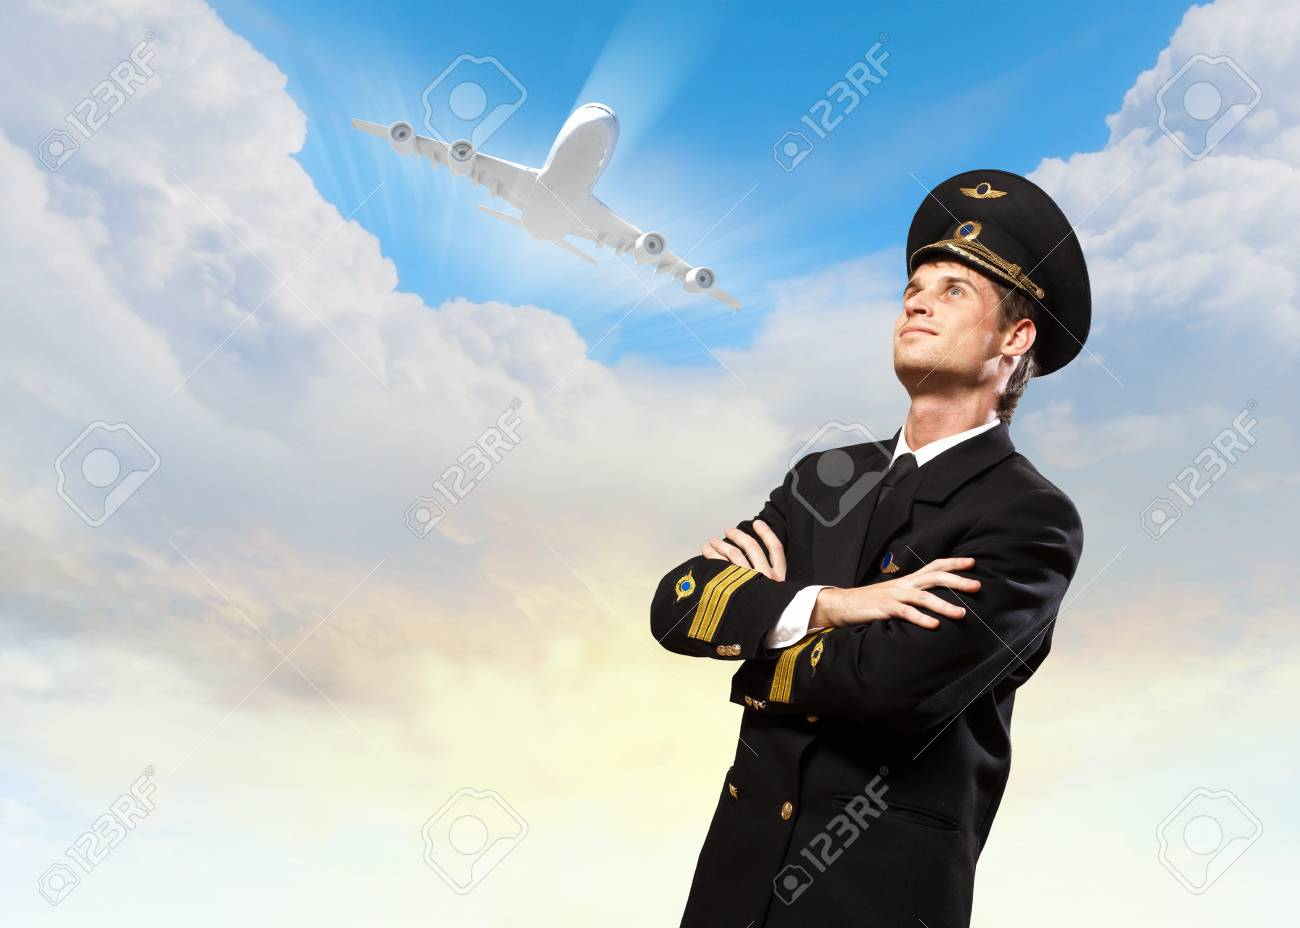 Image of male pilot with airplane at background Stock Photo - 20559870